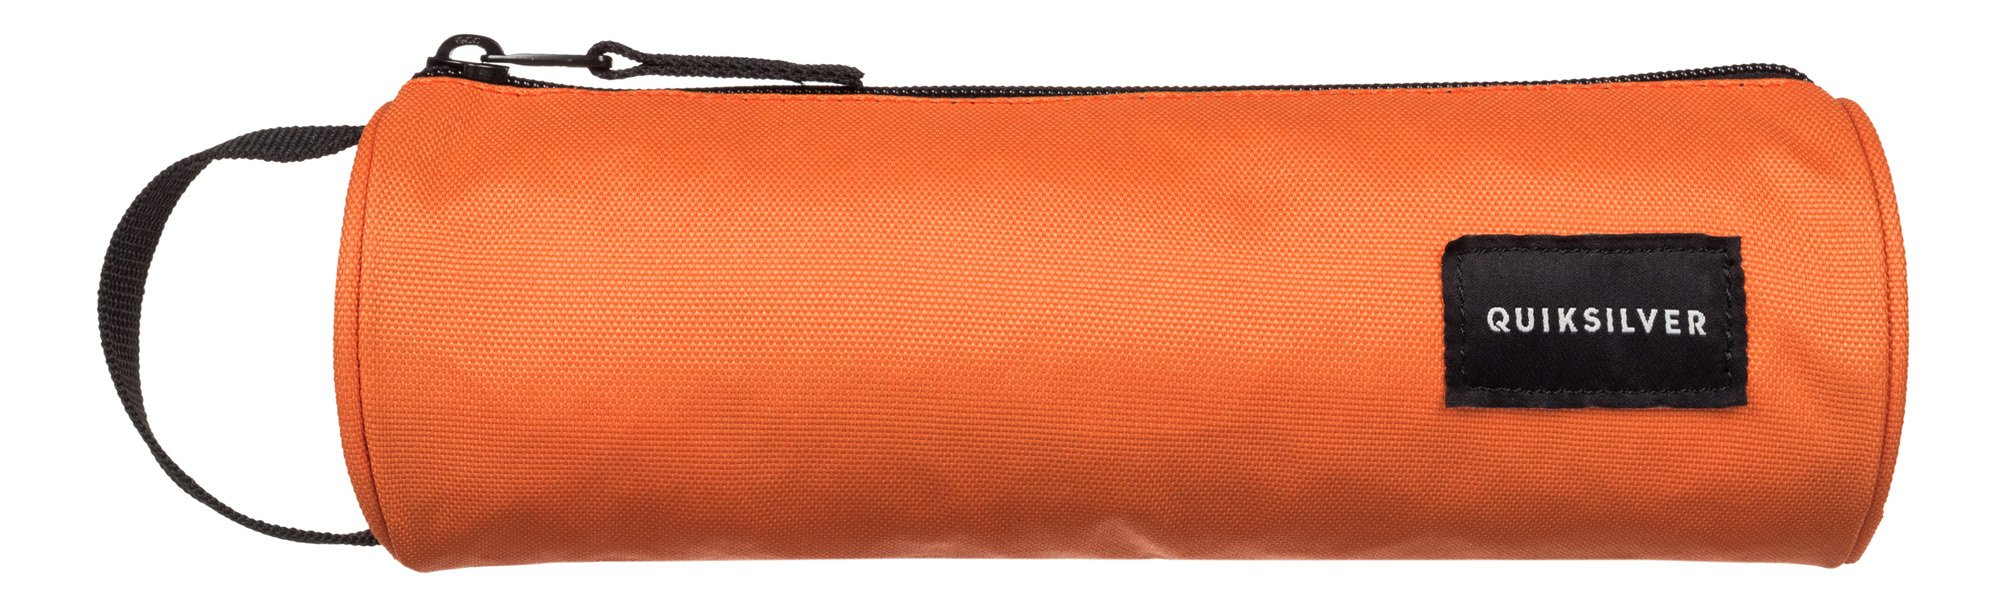 Quiksilver Pencil Estuches, 22 cm